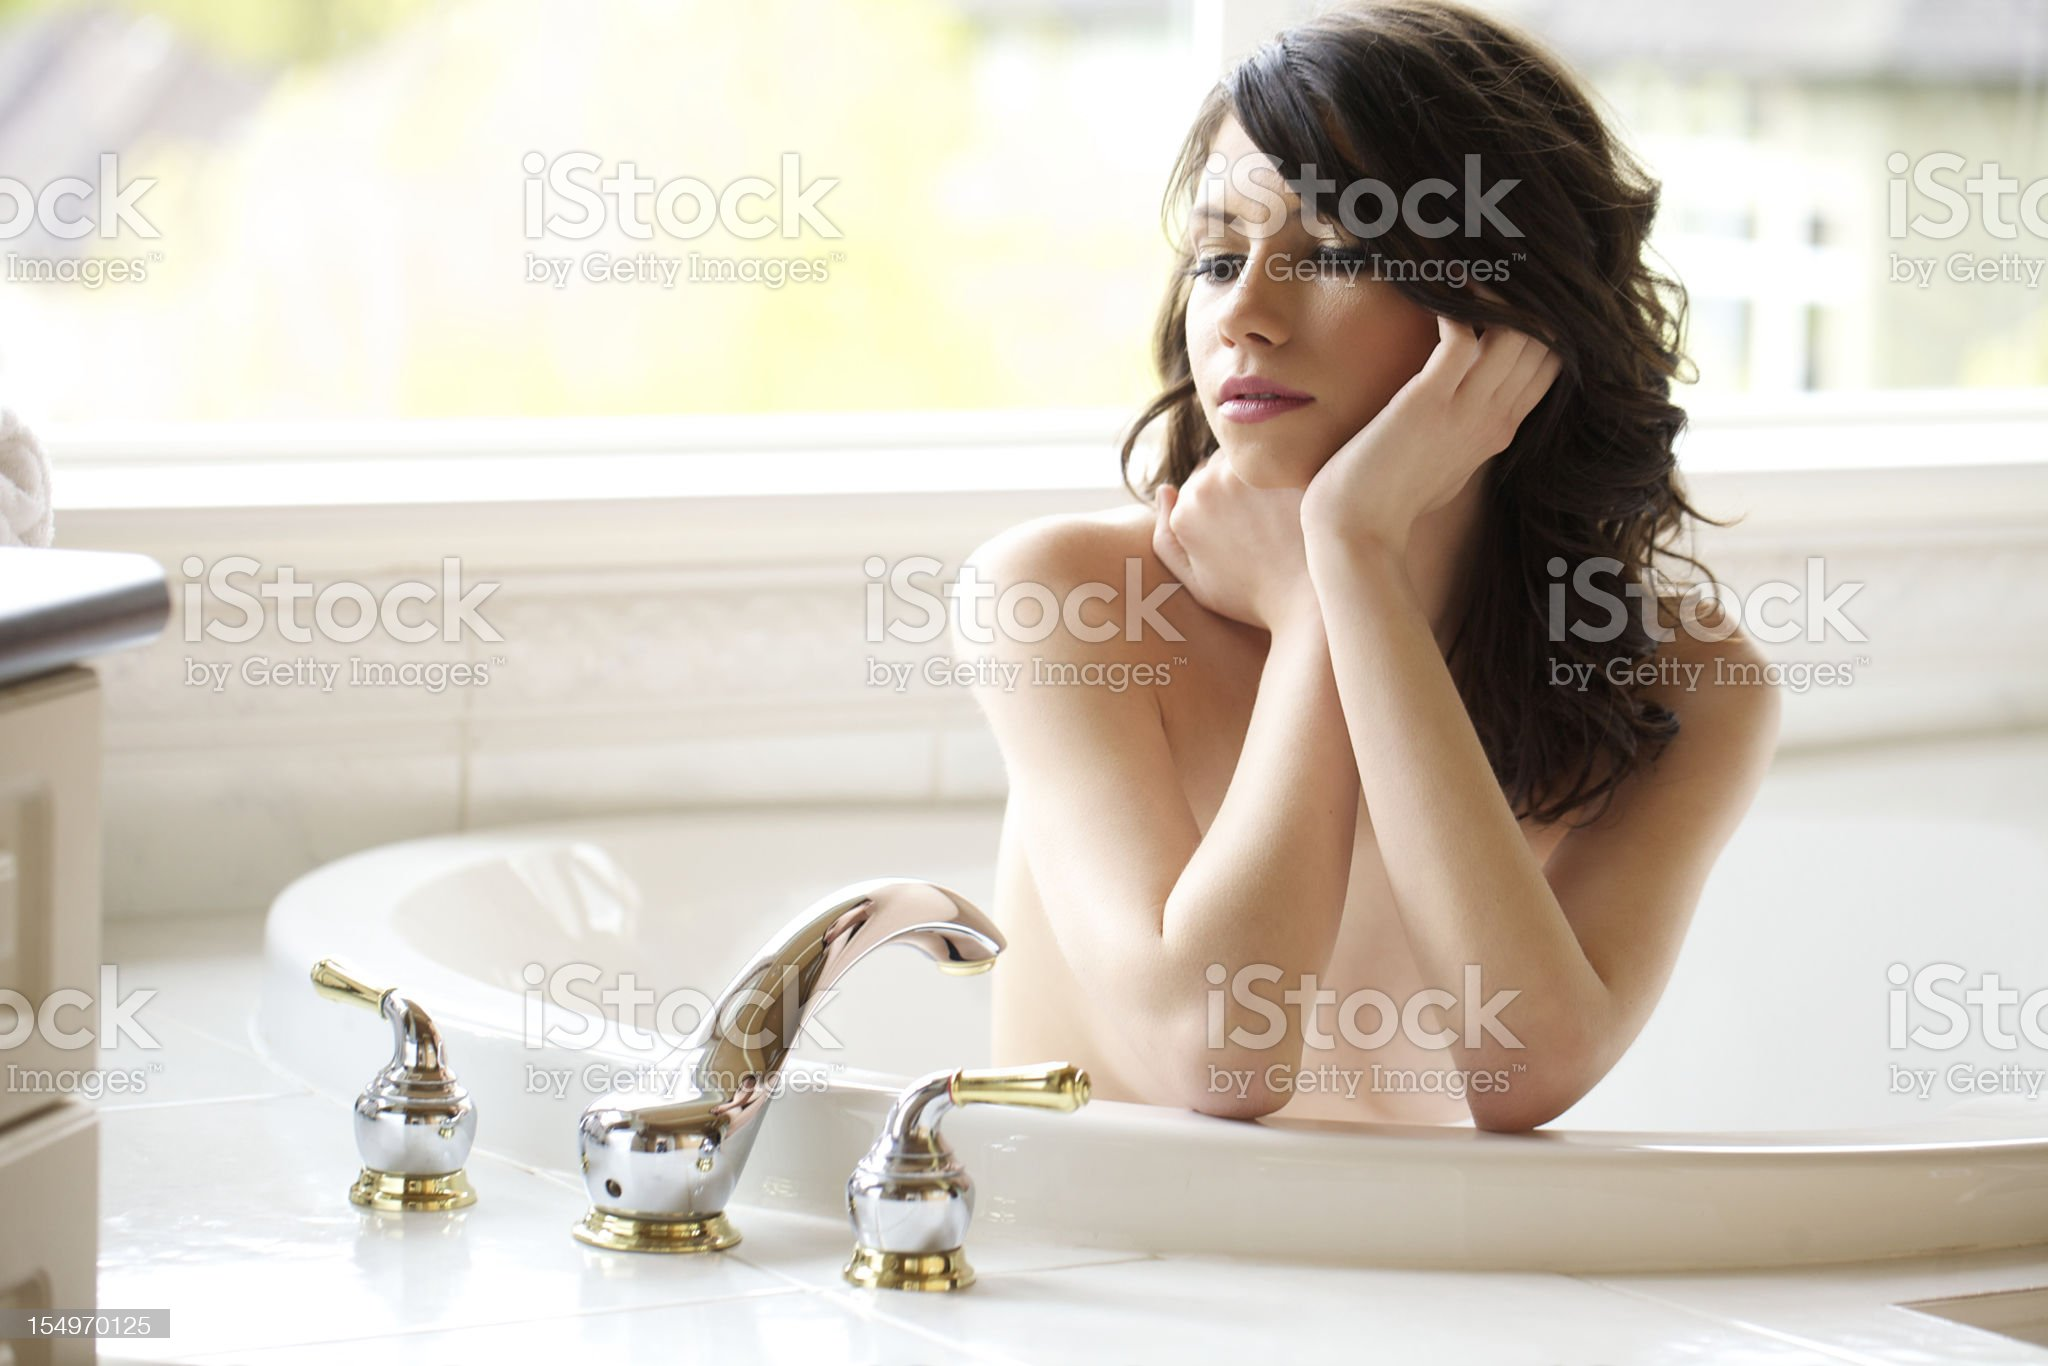 Nude Young Woman in tub royalty-free stock photo